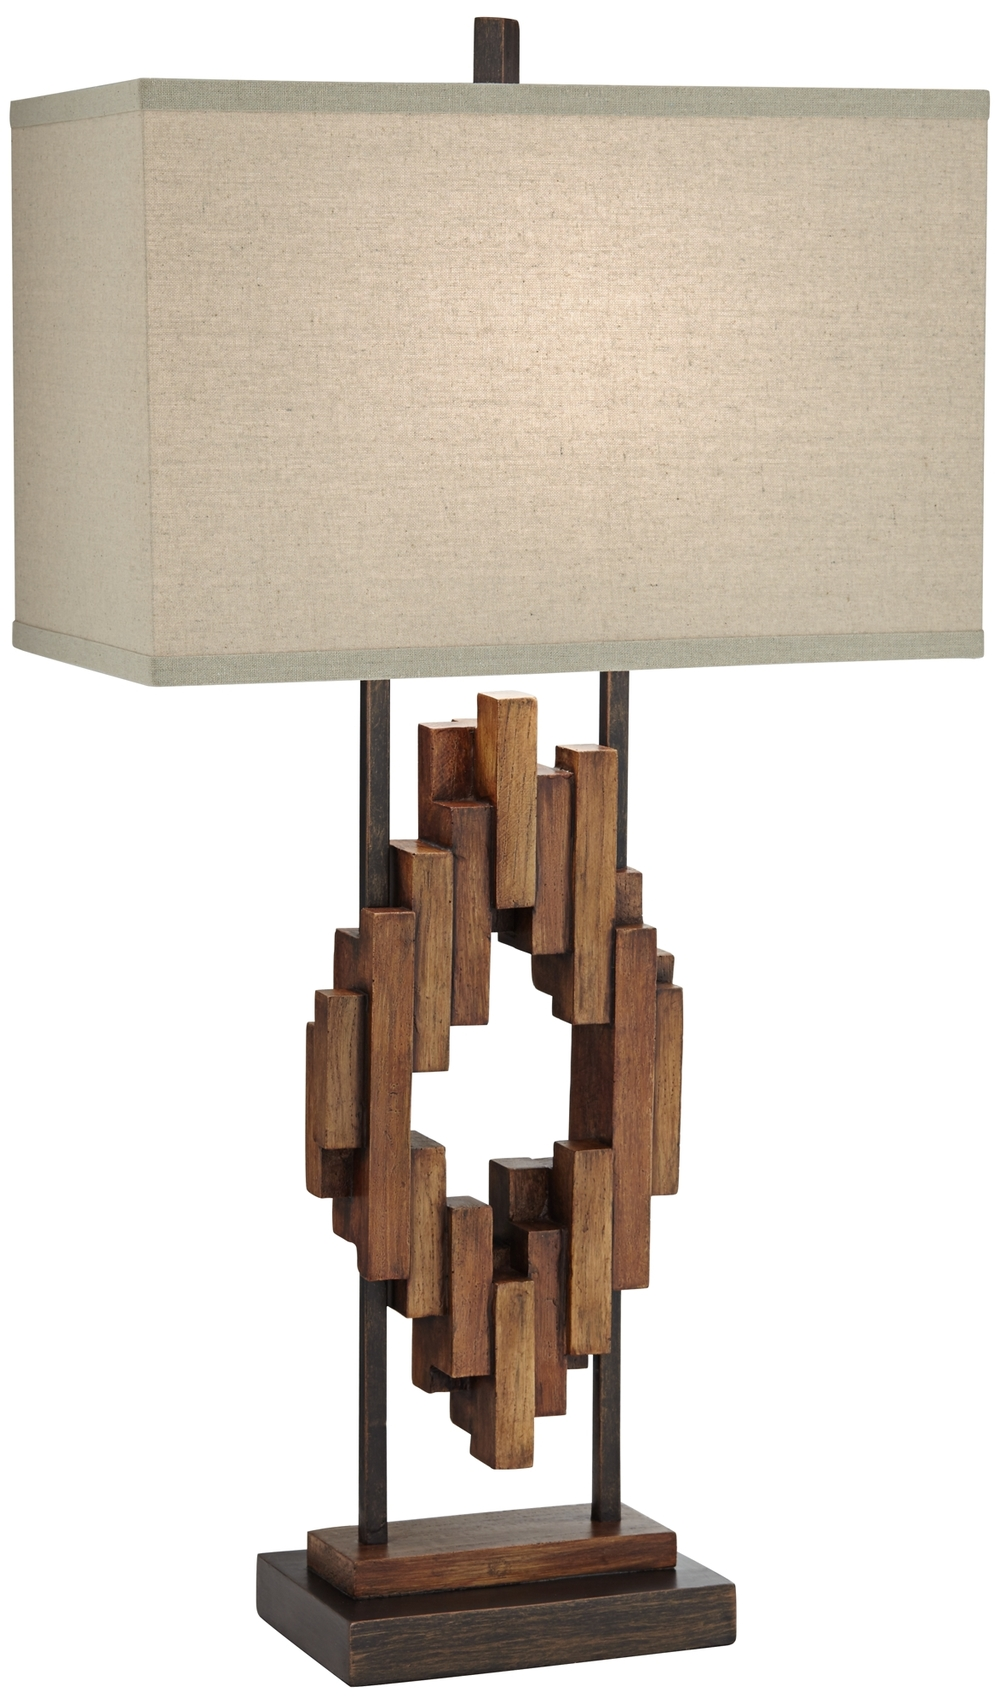 Pacific Coast Lighting - Bonanza Wood Table Lamp